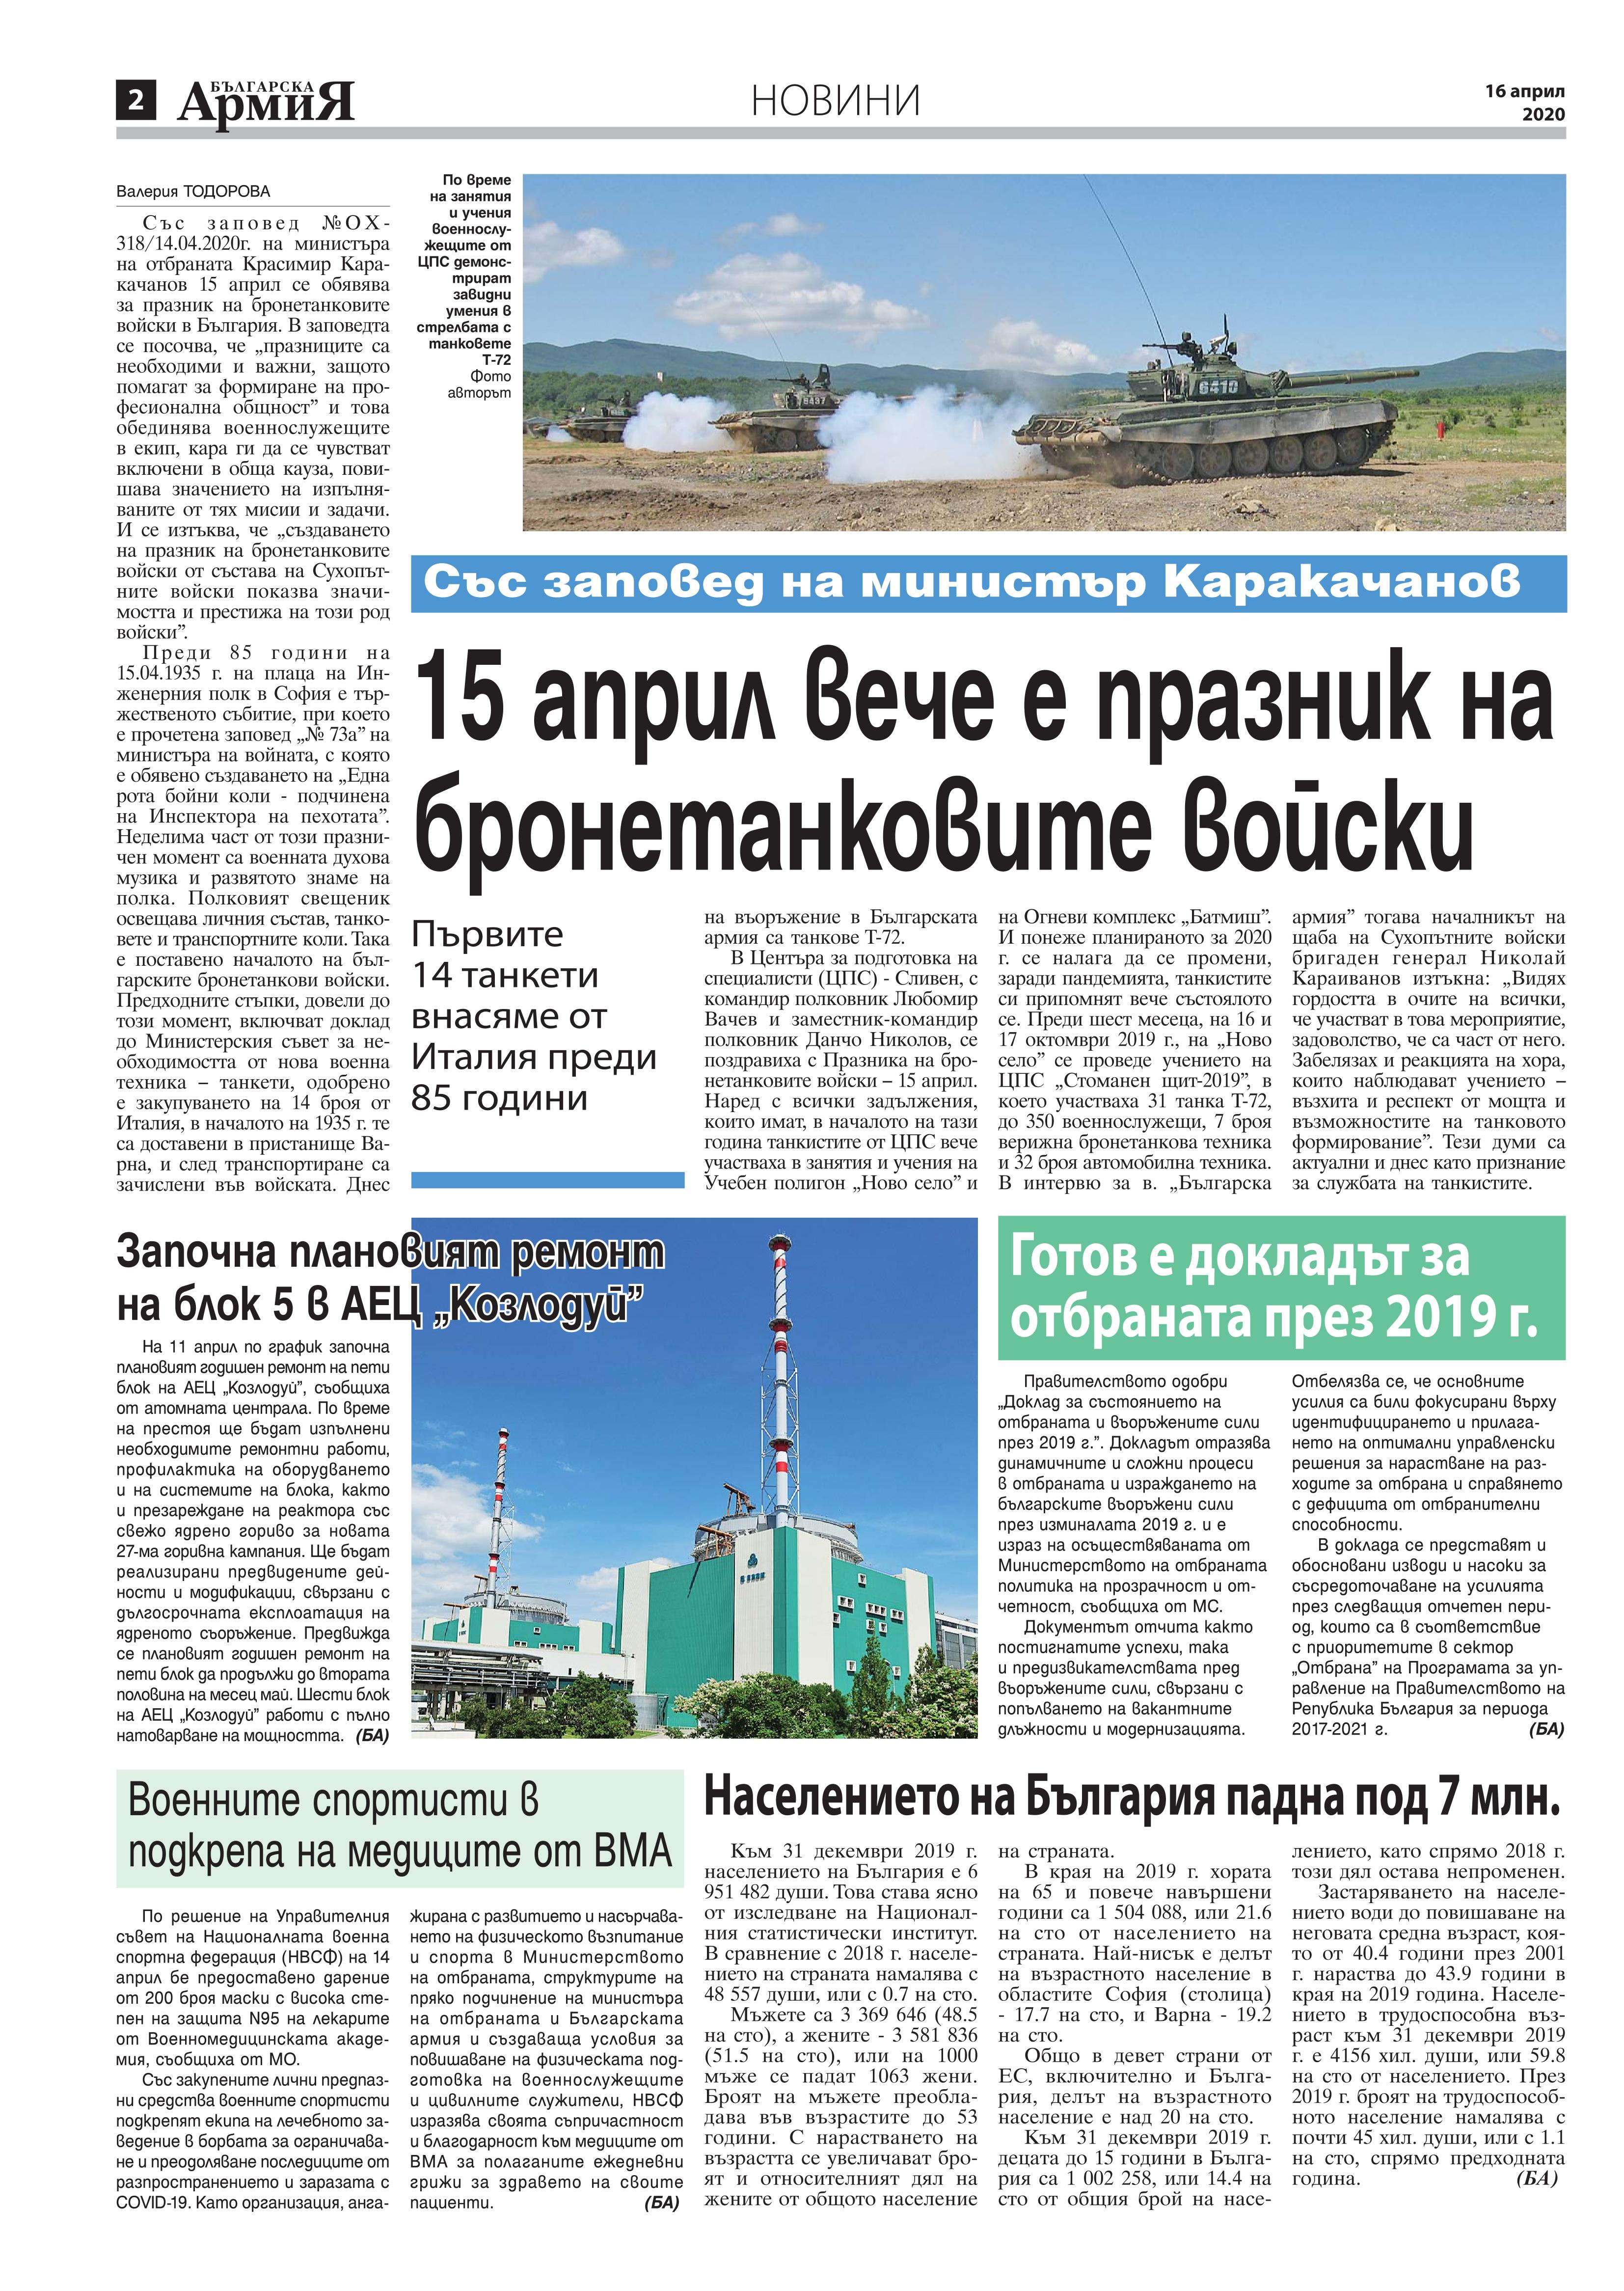 https://armymedia.bg/wp-content/uploads/2015/06/02.page1_-131.jpg